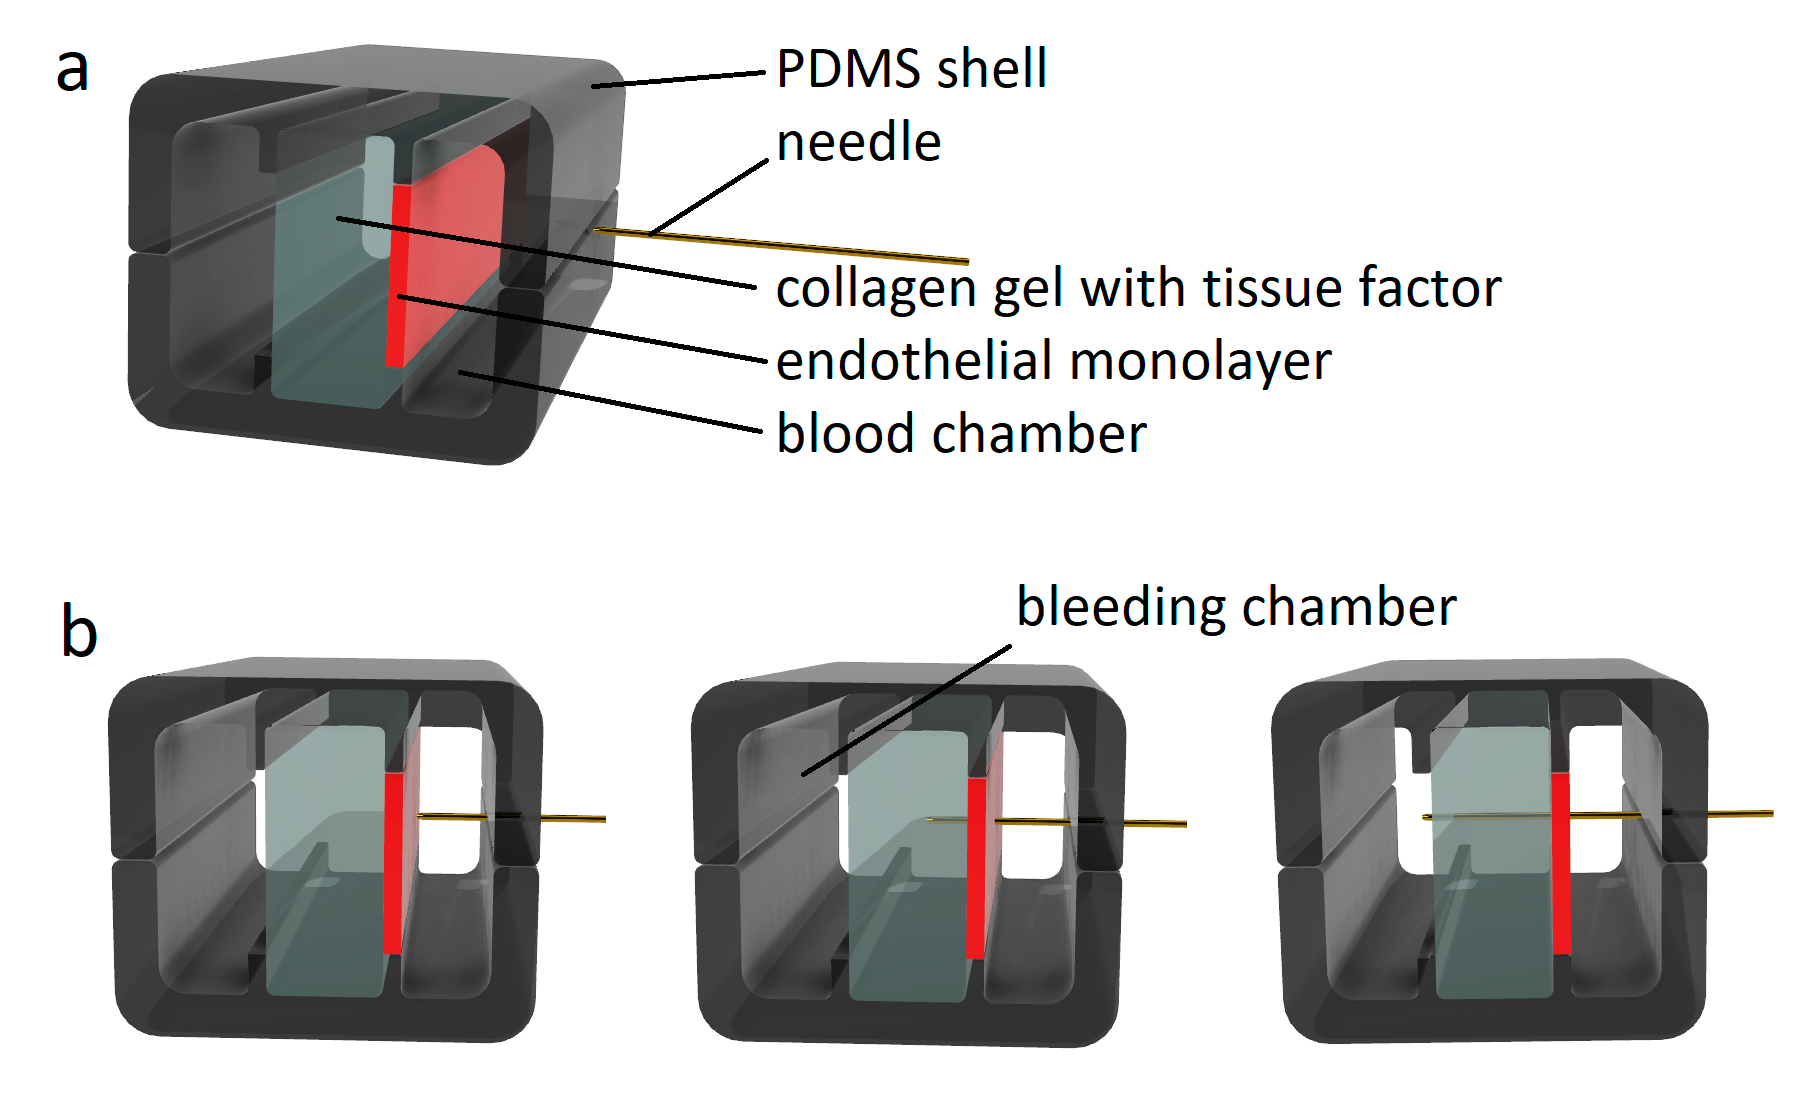 """In vitro model of hemostasis with artificial vessel. a) The system is encapsulated into PDMS shell. Basic components are shown in the schematics and labeled accordingly b) Consecutive steps of the puncturing process performed by the needle. The needle is moved from right to the left and first penetrates the blood chamber (right section), then punctures the endothelial layer (shown red) and collagen gel section (middle), and finally reaches the """"extravascular"""" domain, denoted as bleeding chamber. Adapted from [34]."""